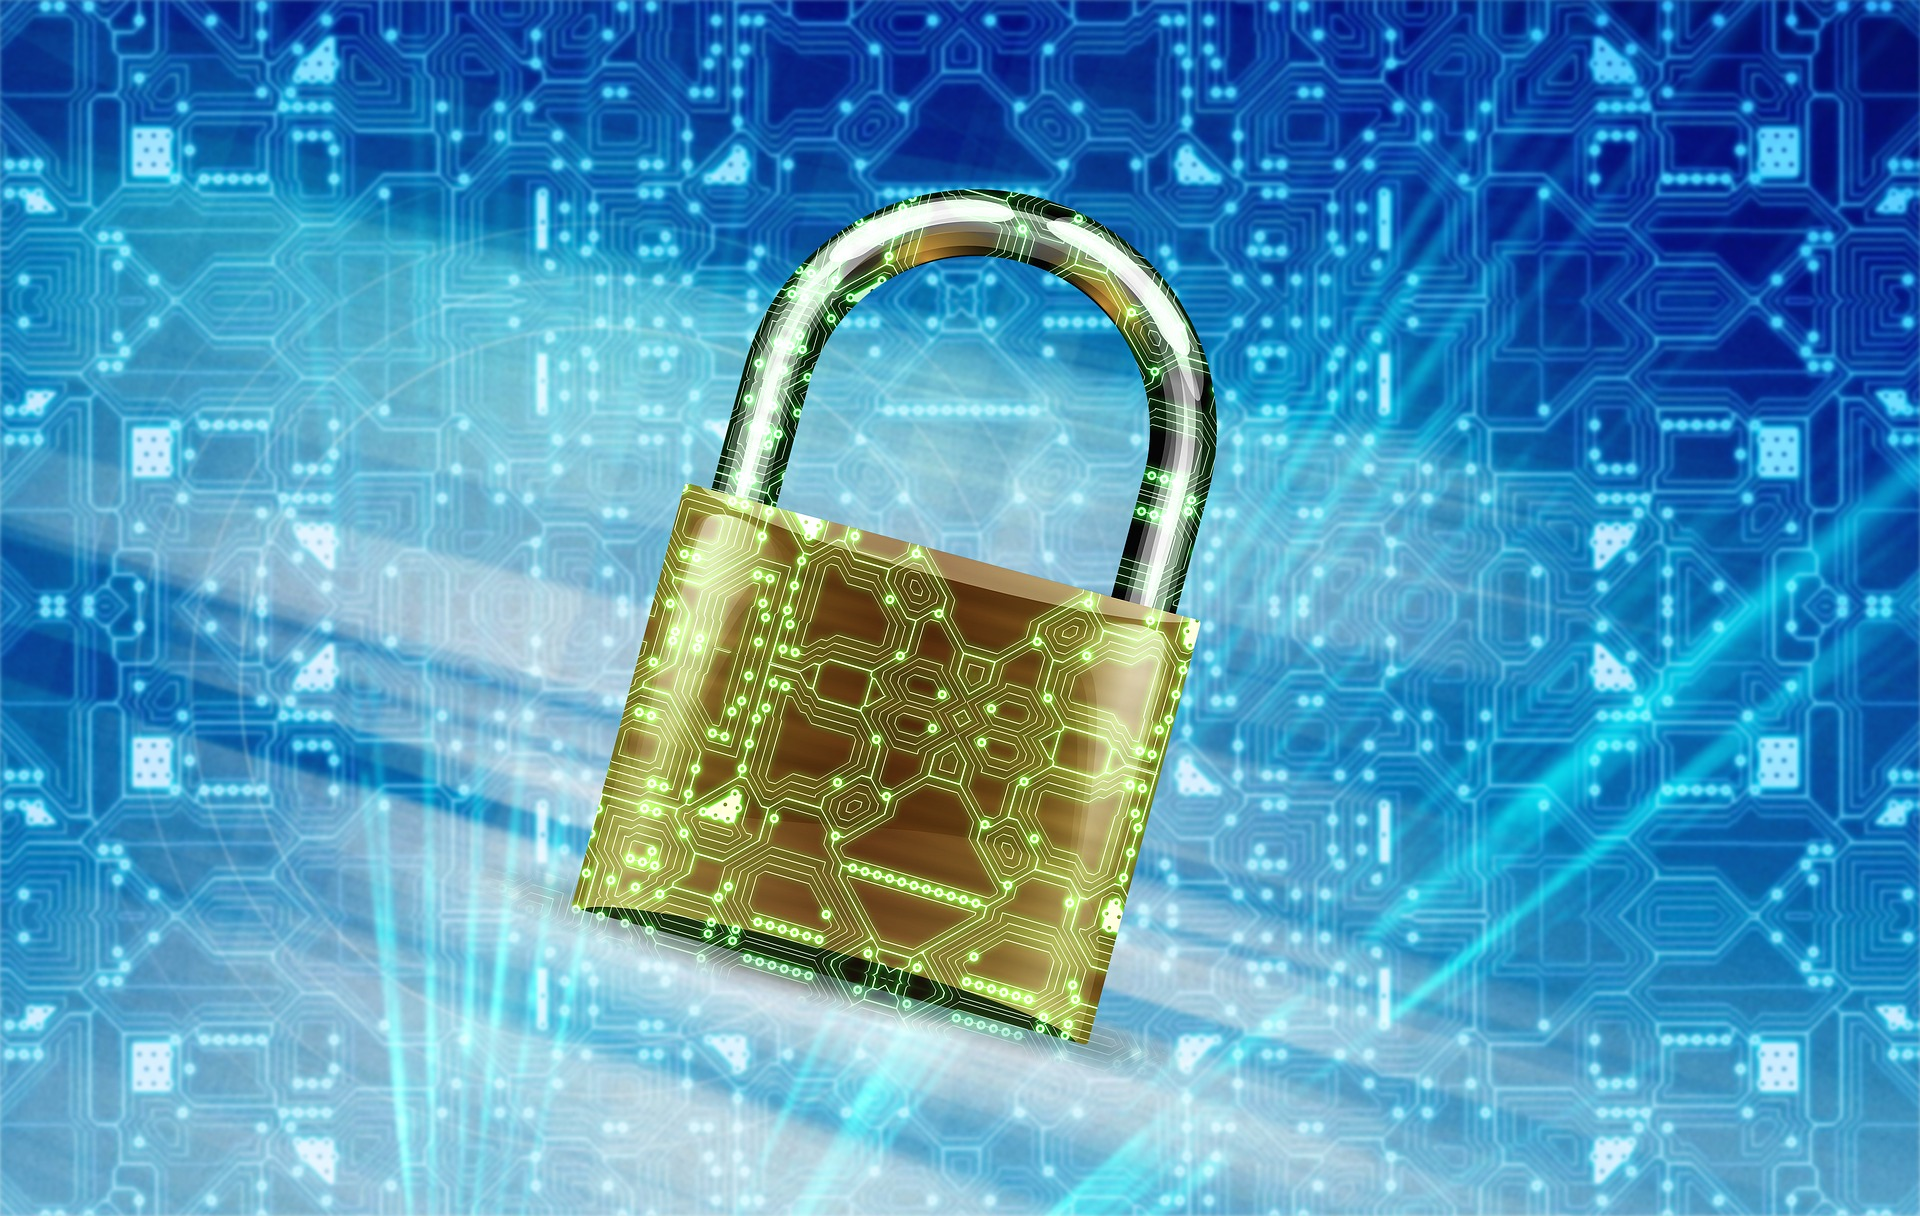 Protect the home network with your own PKI certification authority using OpenSSL